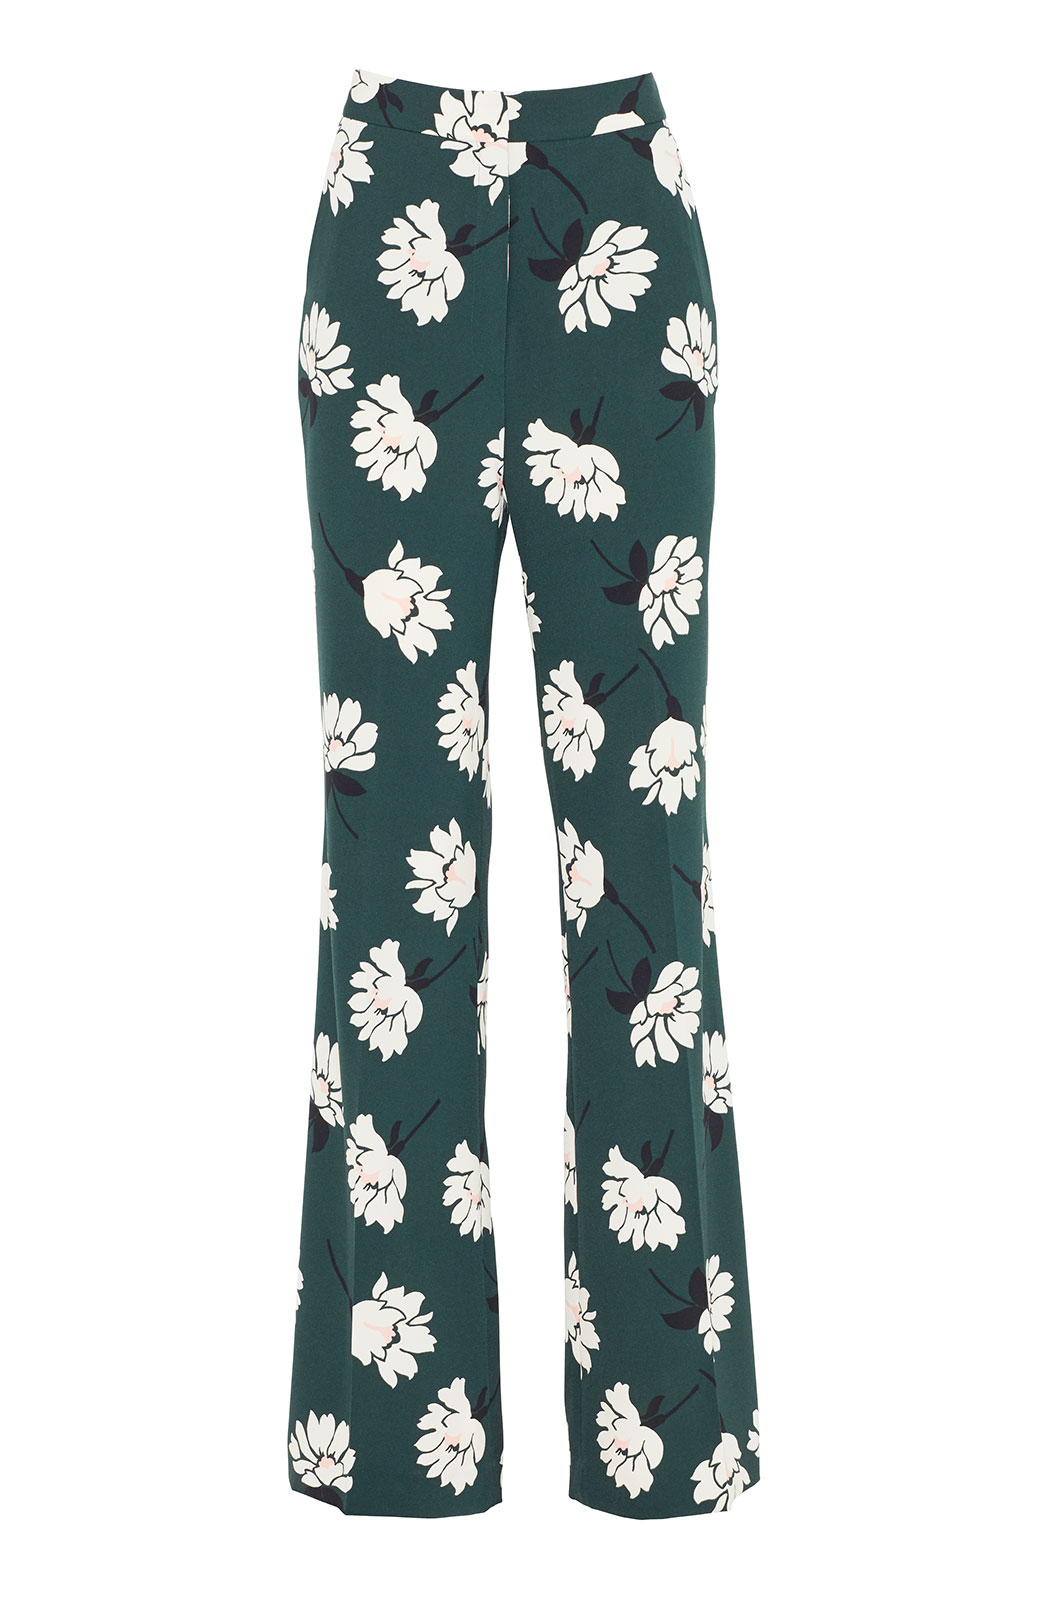 <ul><li>Floral crepe high waisted wide leg Ruthie pant</li><li>Concealed hook, button, and zip fastening at front</li><li>Polyester/Elastane</li><li>Machine wash cold, dry flat</li><li>Made in USA</li></ul>